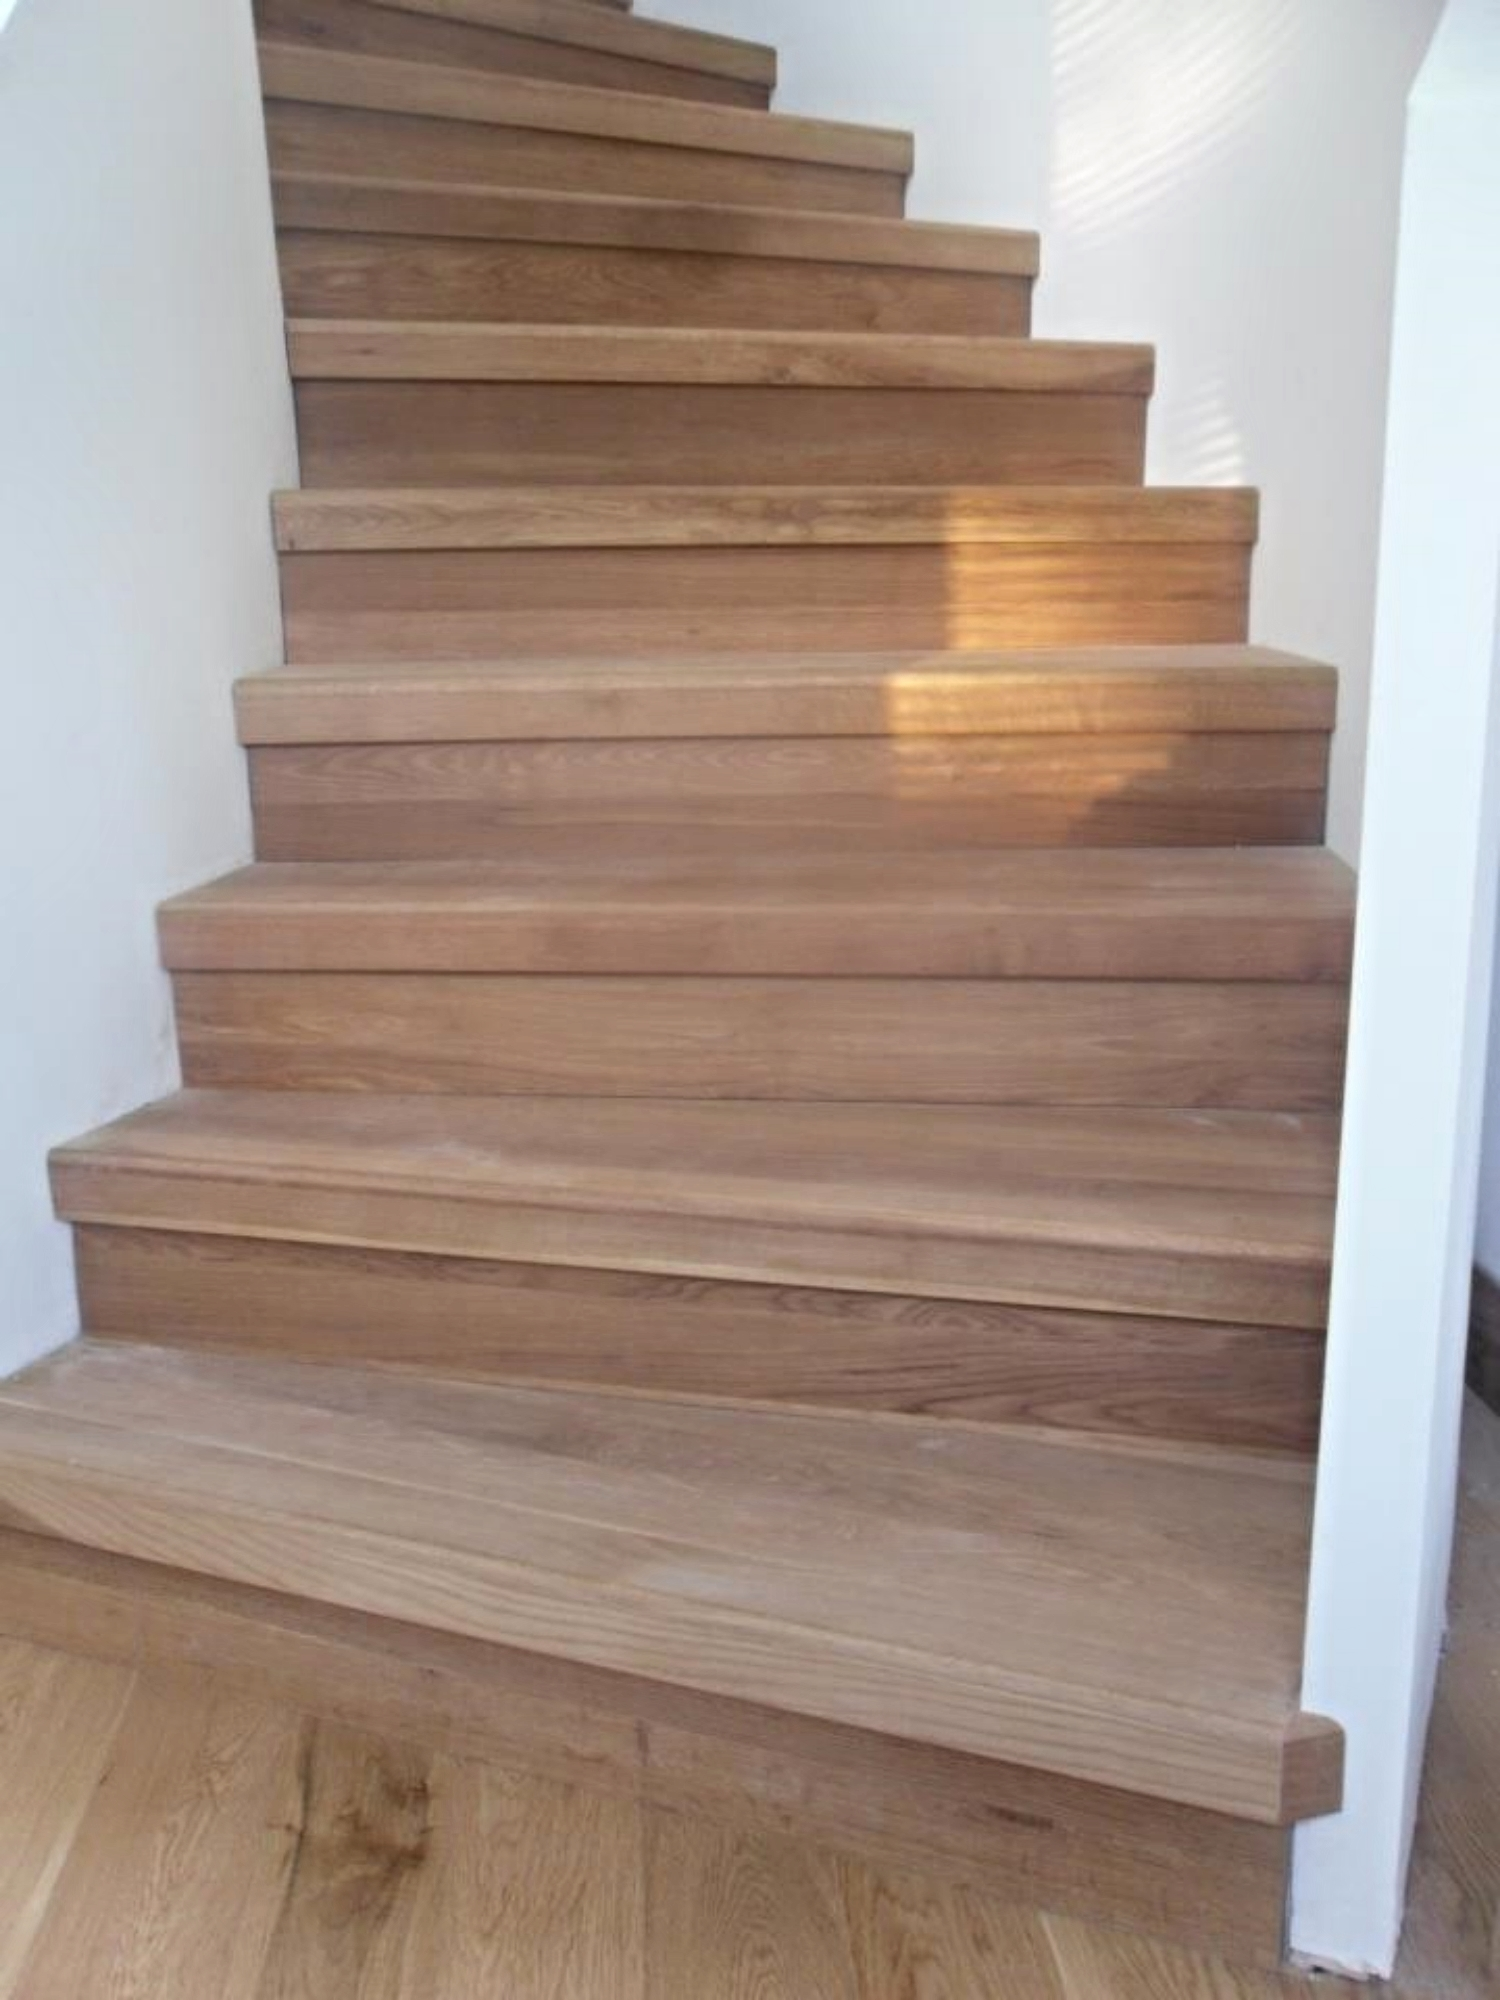 Stair Treads Risers Oak Stair Tread 1000 X 305 Mm   Wood Stair Treads And Risers